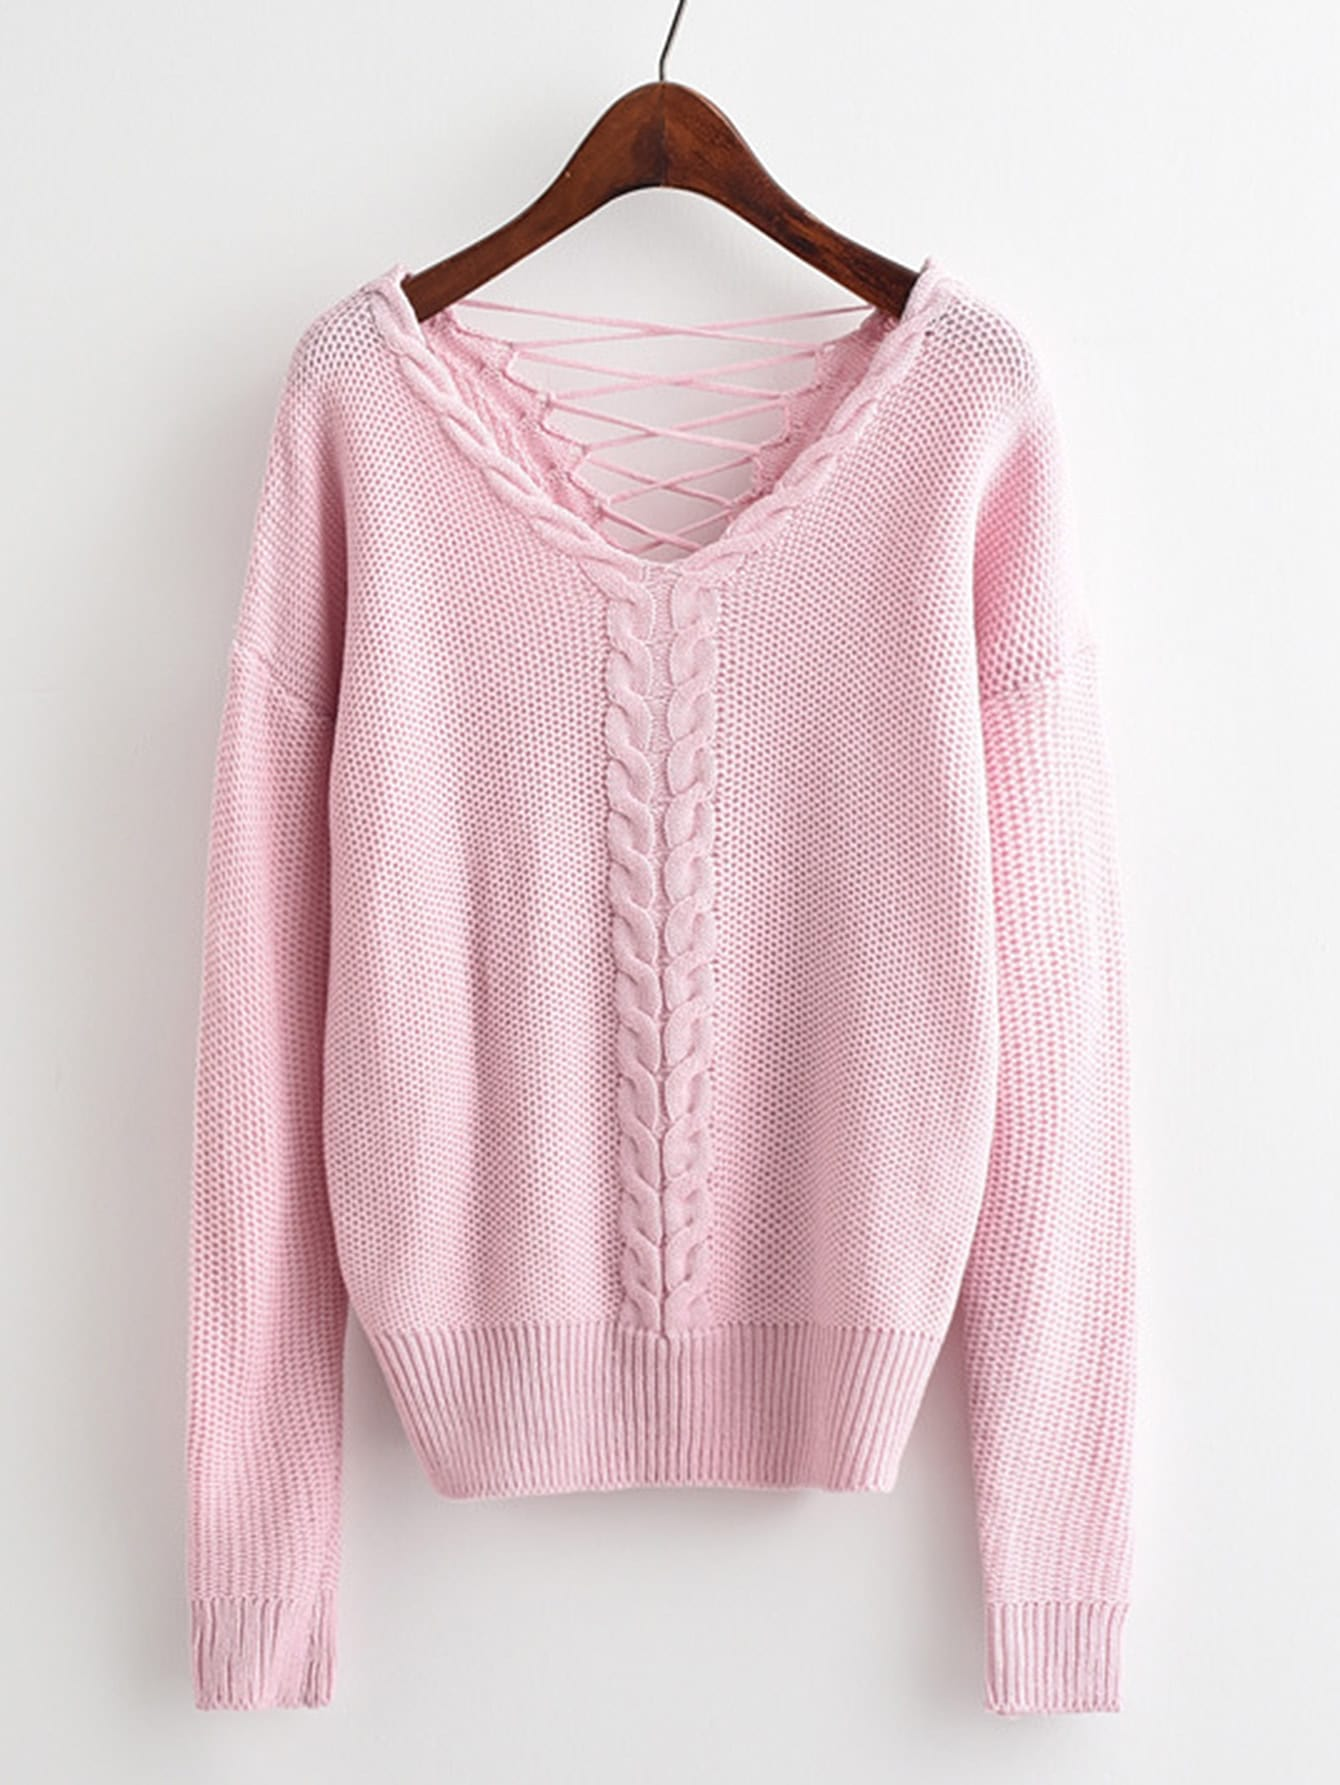 Lace Up Open Back Cable Knit Sweater jaydeb bhaumik and satyajit das substitution permutation network type block cipher